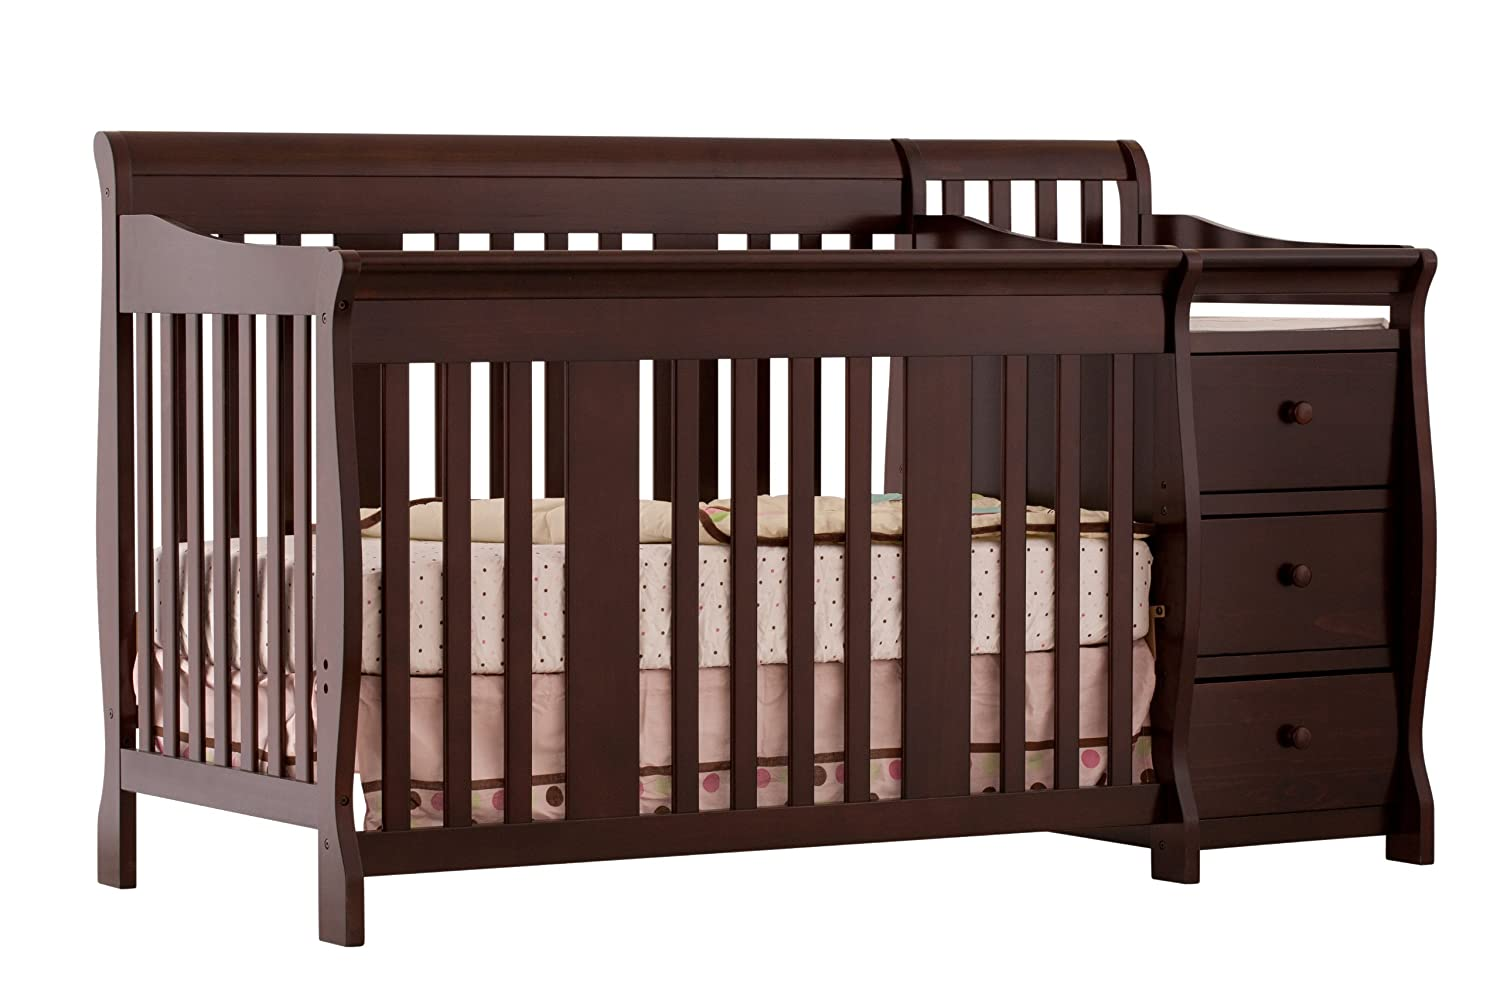 Storkcraft Nursery Furniture Storkcraft Baby Portofino 4 in 1 Convertible Crib Amp Changer Sleigh ...